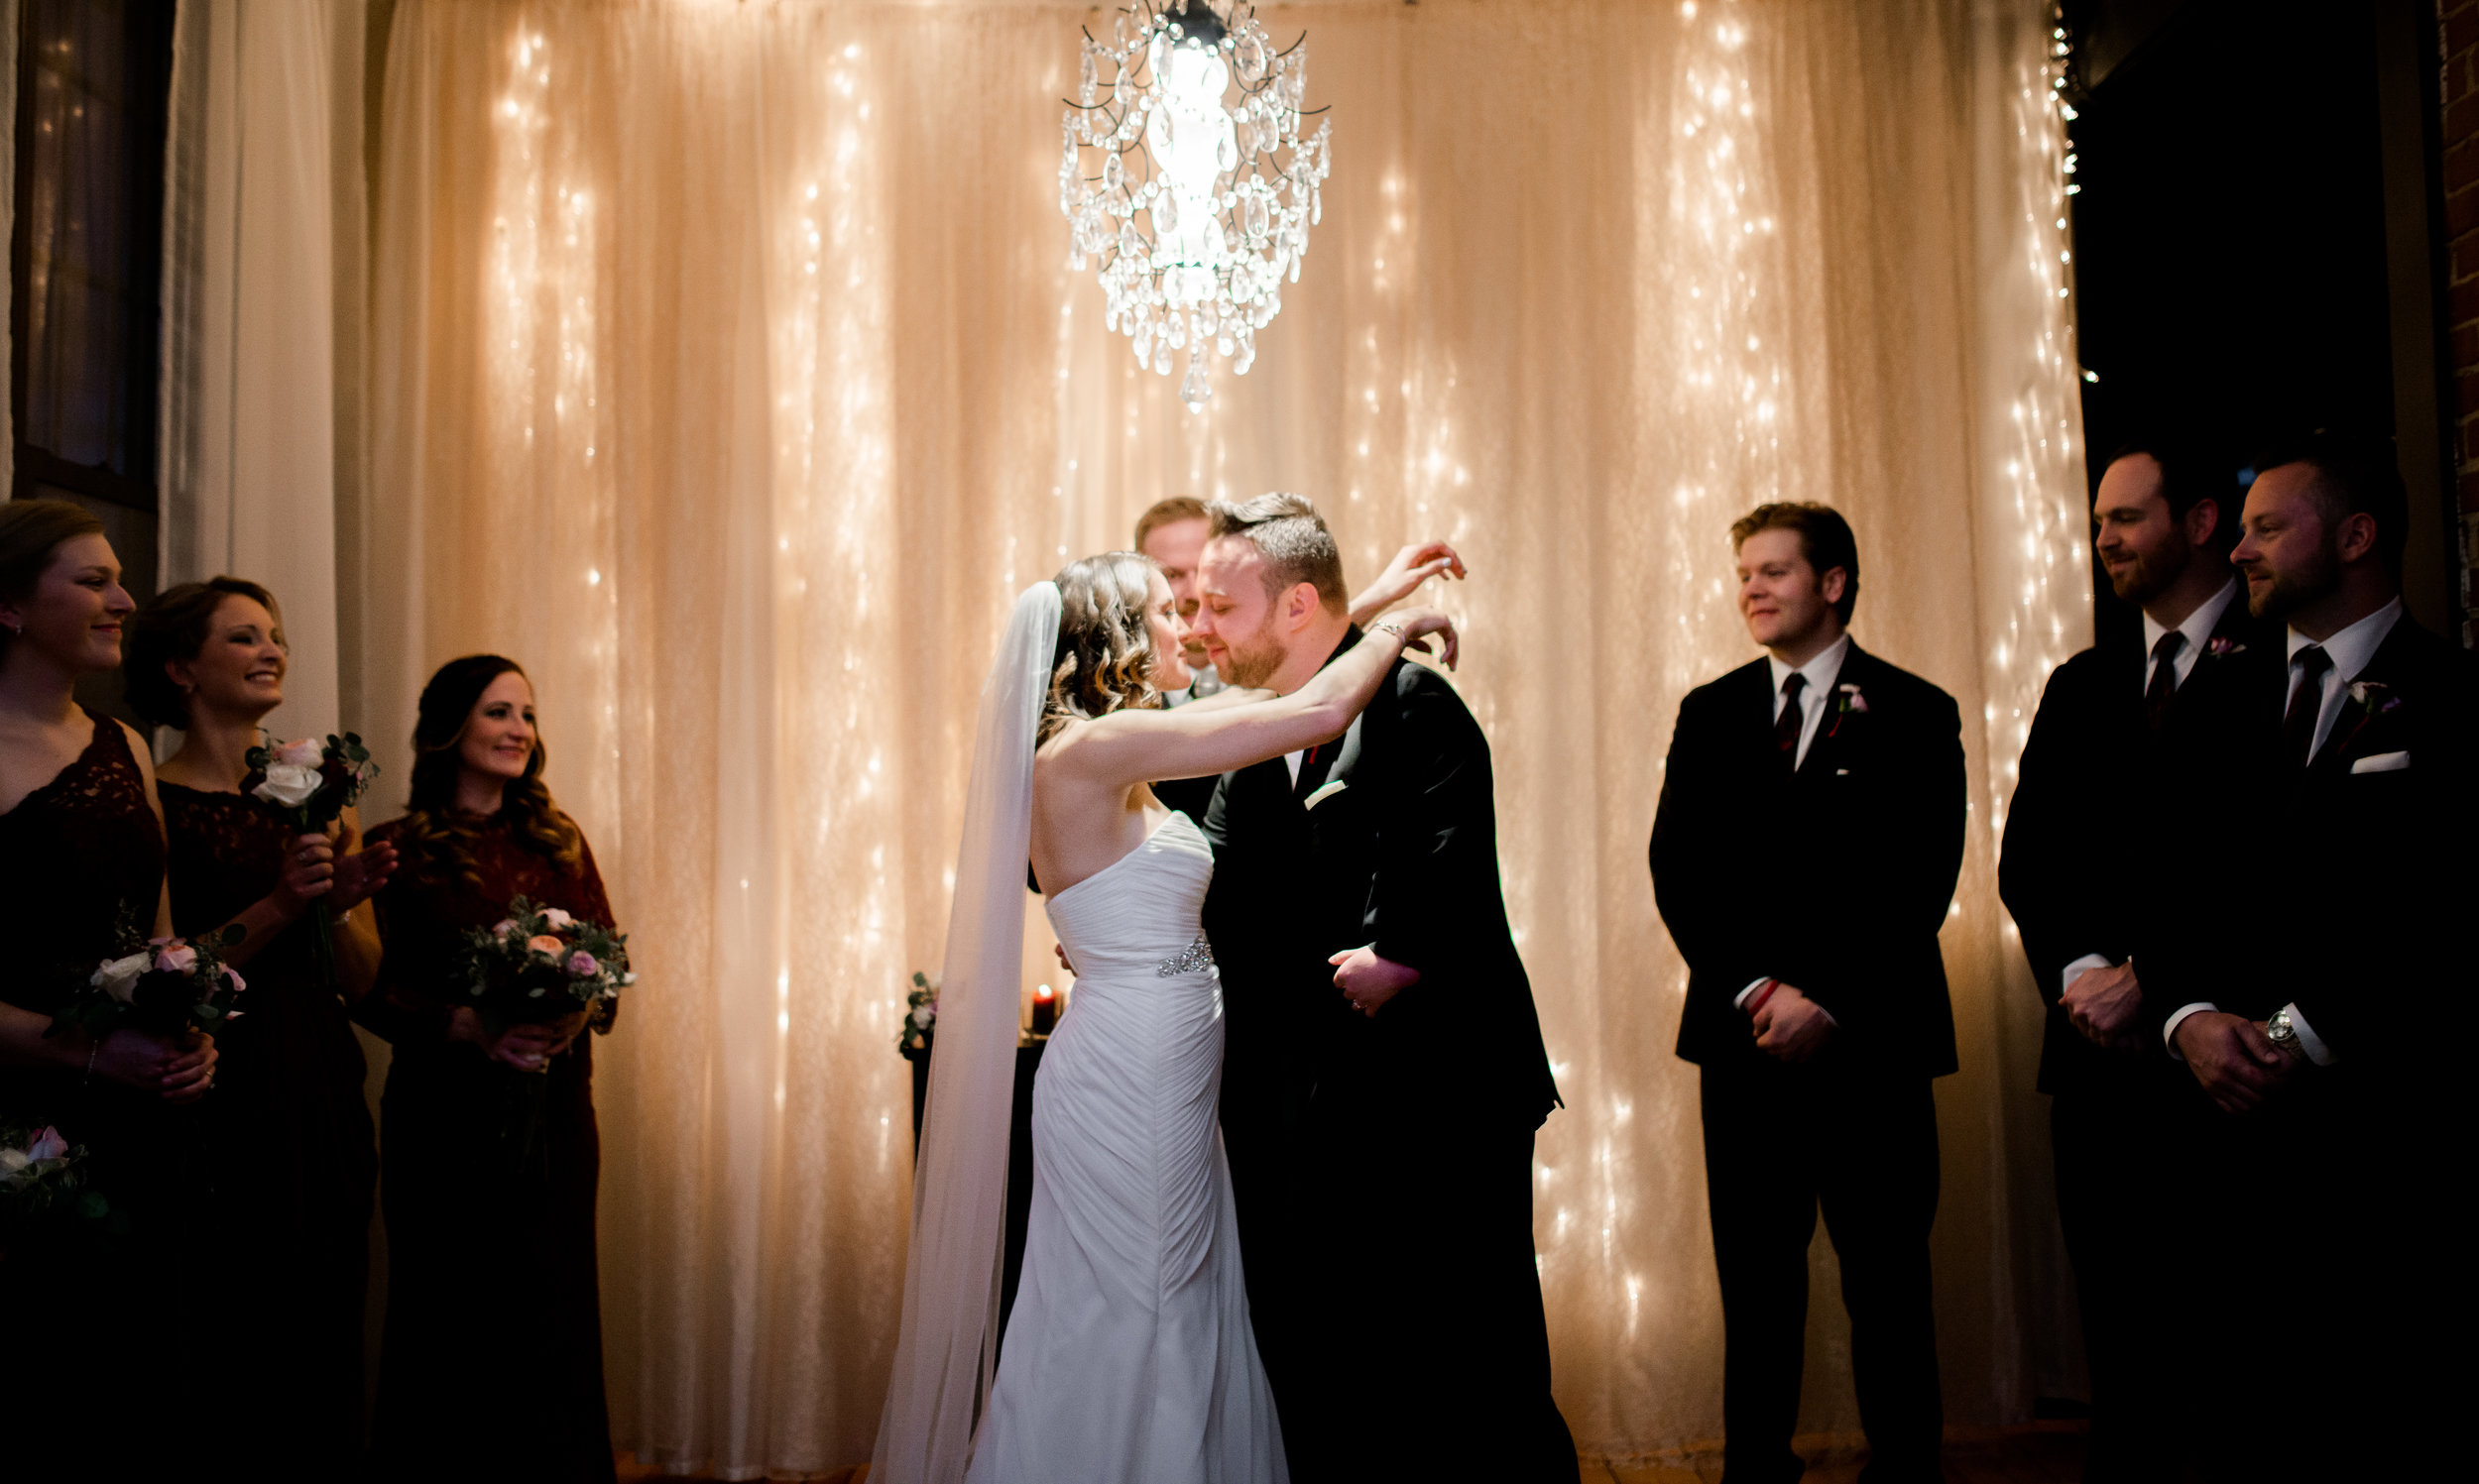 LUV LENS_WEDDING_EMILY AND ANDREW-260.jpg